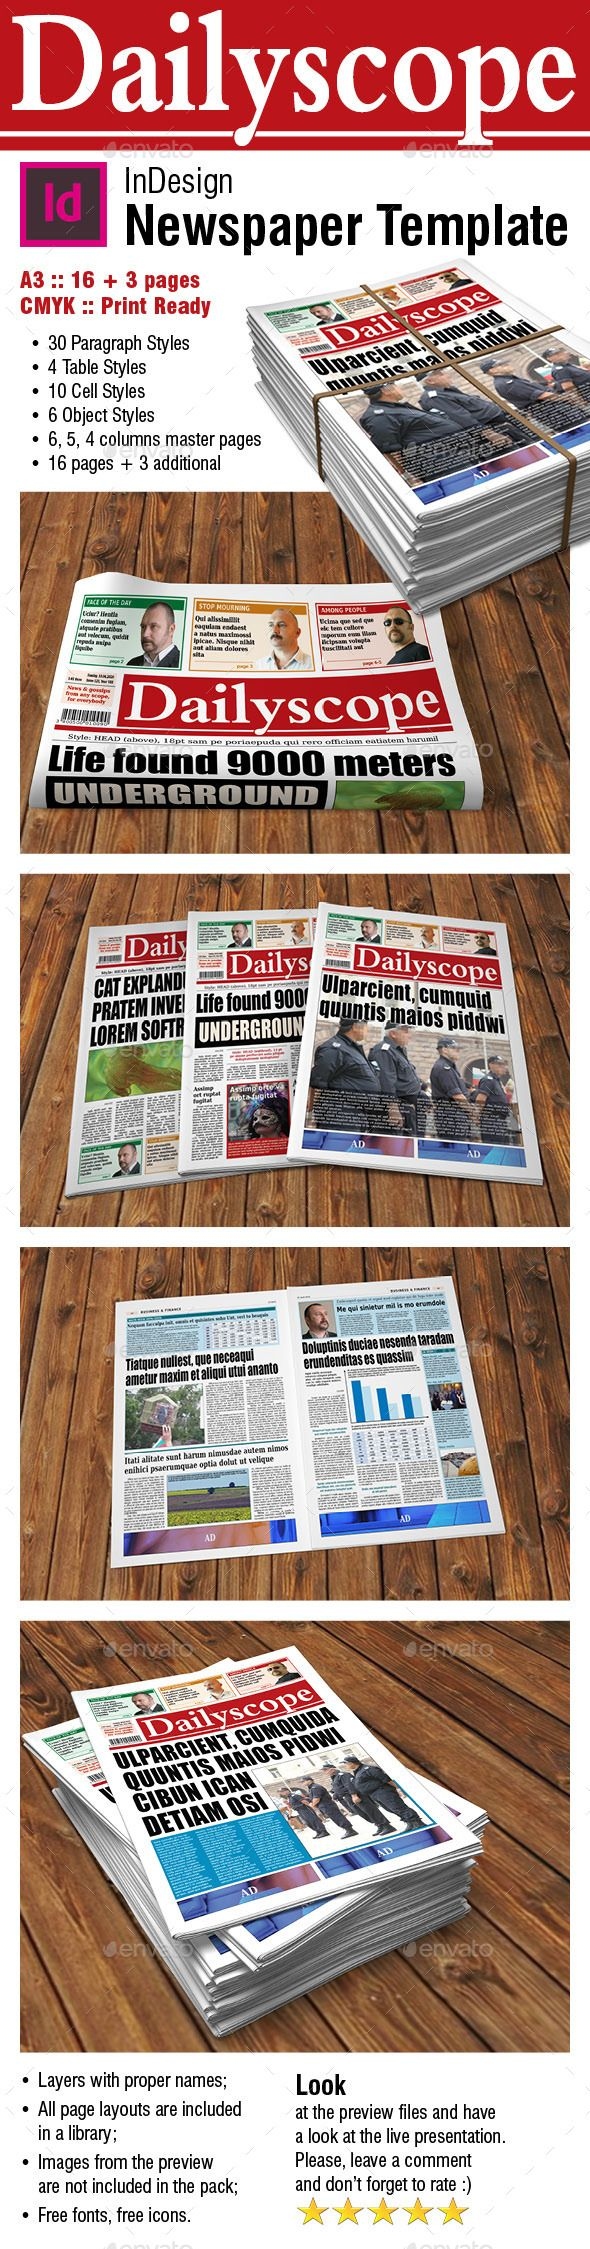 25 trending indesign newspaper template ideas on pinterest dailyscope newspaper template 16 3 pages pronofoot35fo Image collections